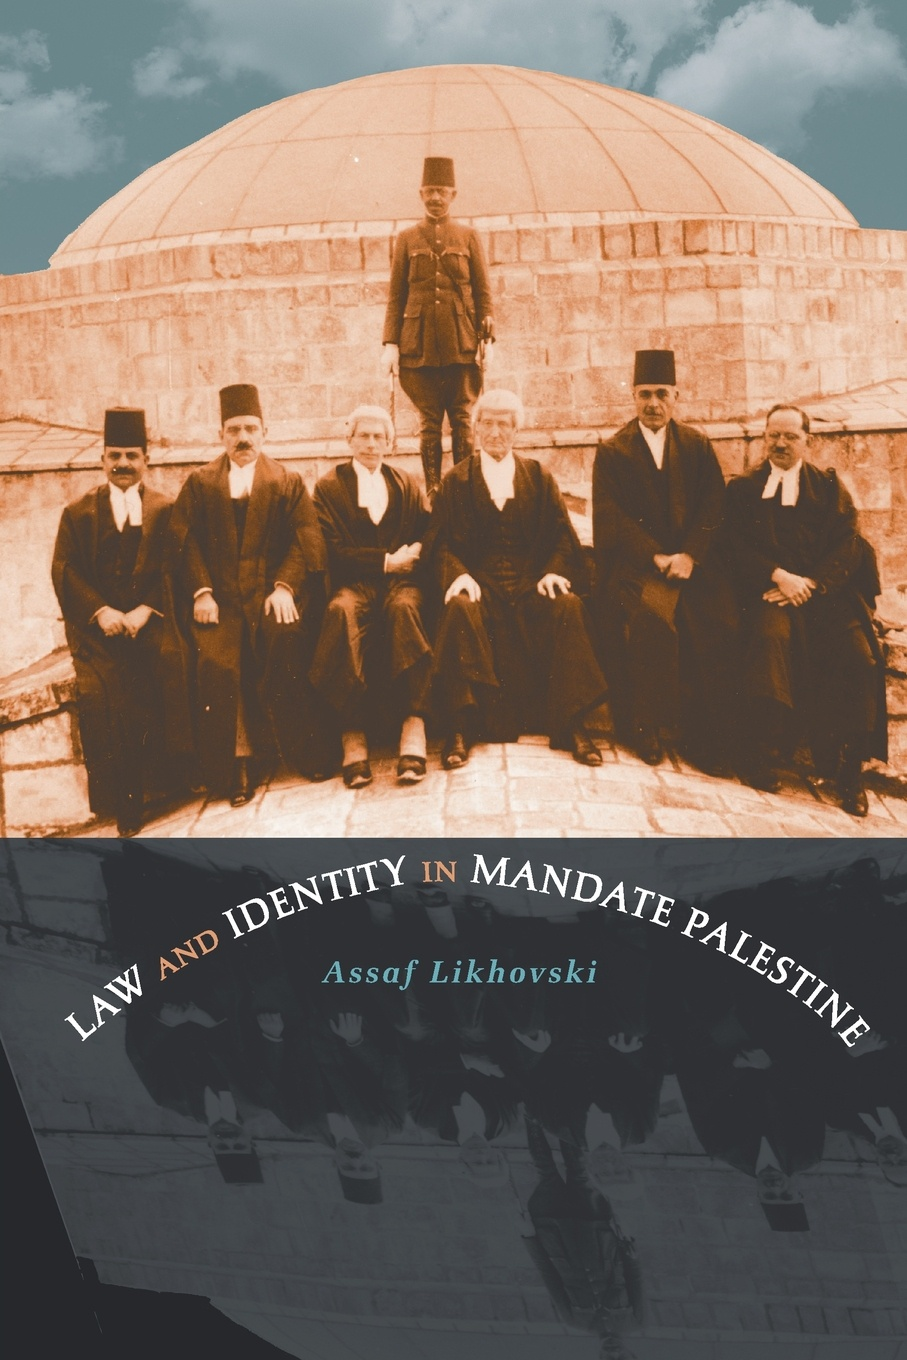 Assaf Likhovski Law and Identity in Mandate Palestine